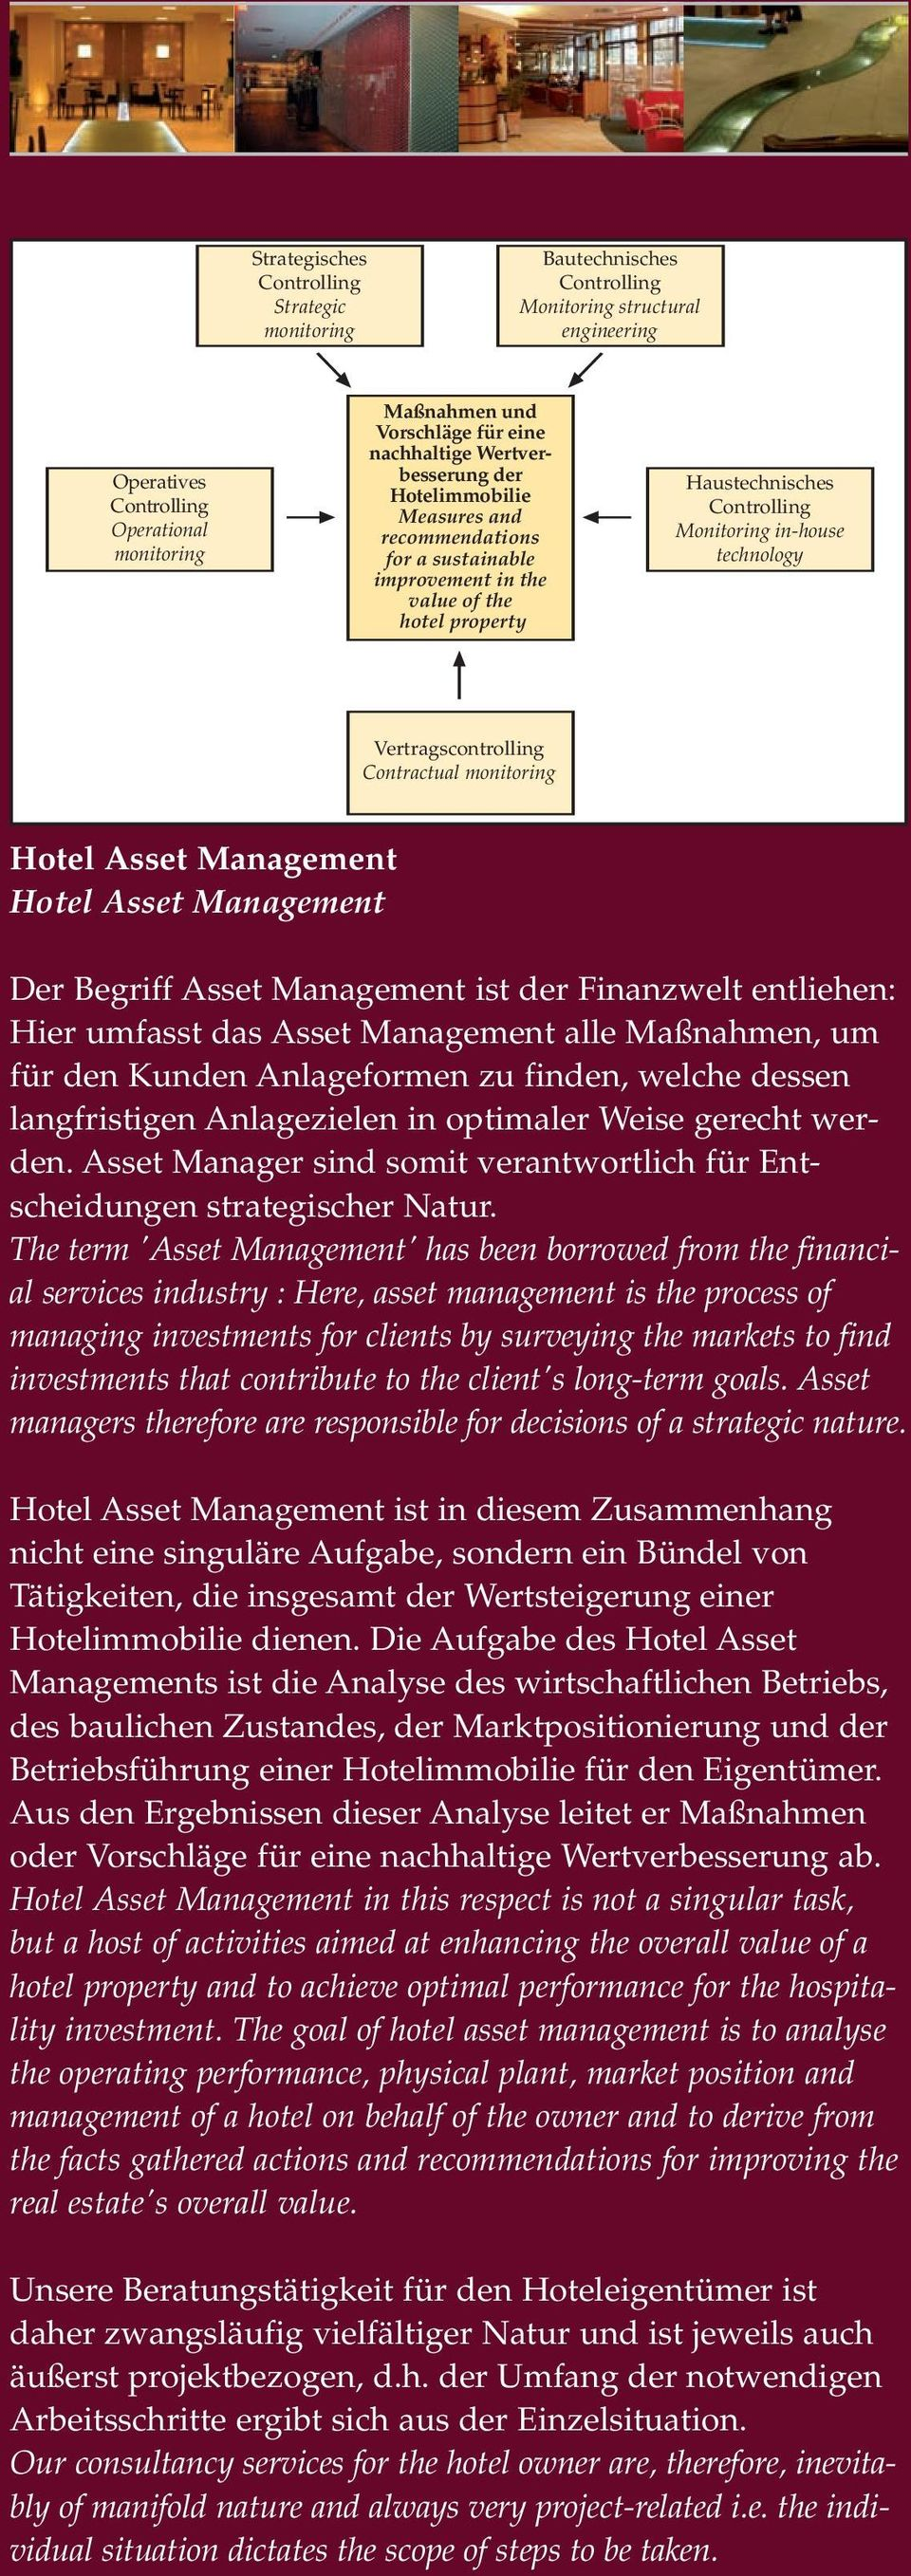 Vertragscontrolling Contractual monitoring Hotel Asset Management Hotel Asset Management Der Begriff Asset Management ist der Finanzwelt entliehen: Hier umfasst das Asset Management alle Maßnahmen,